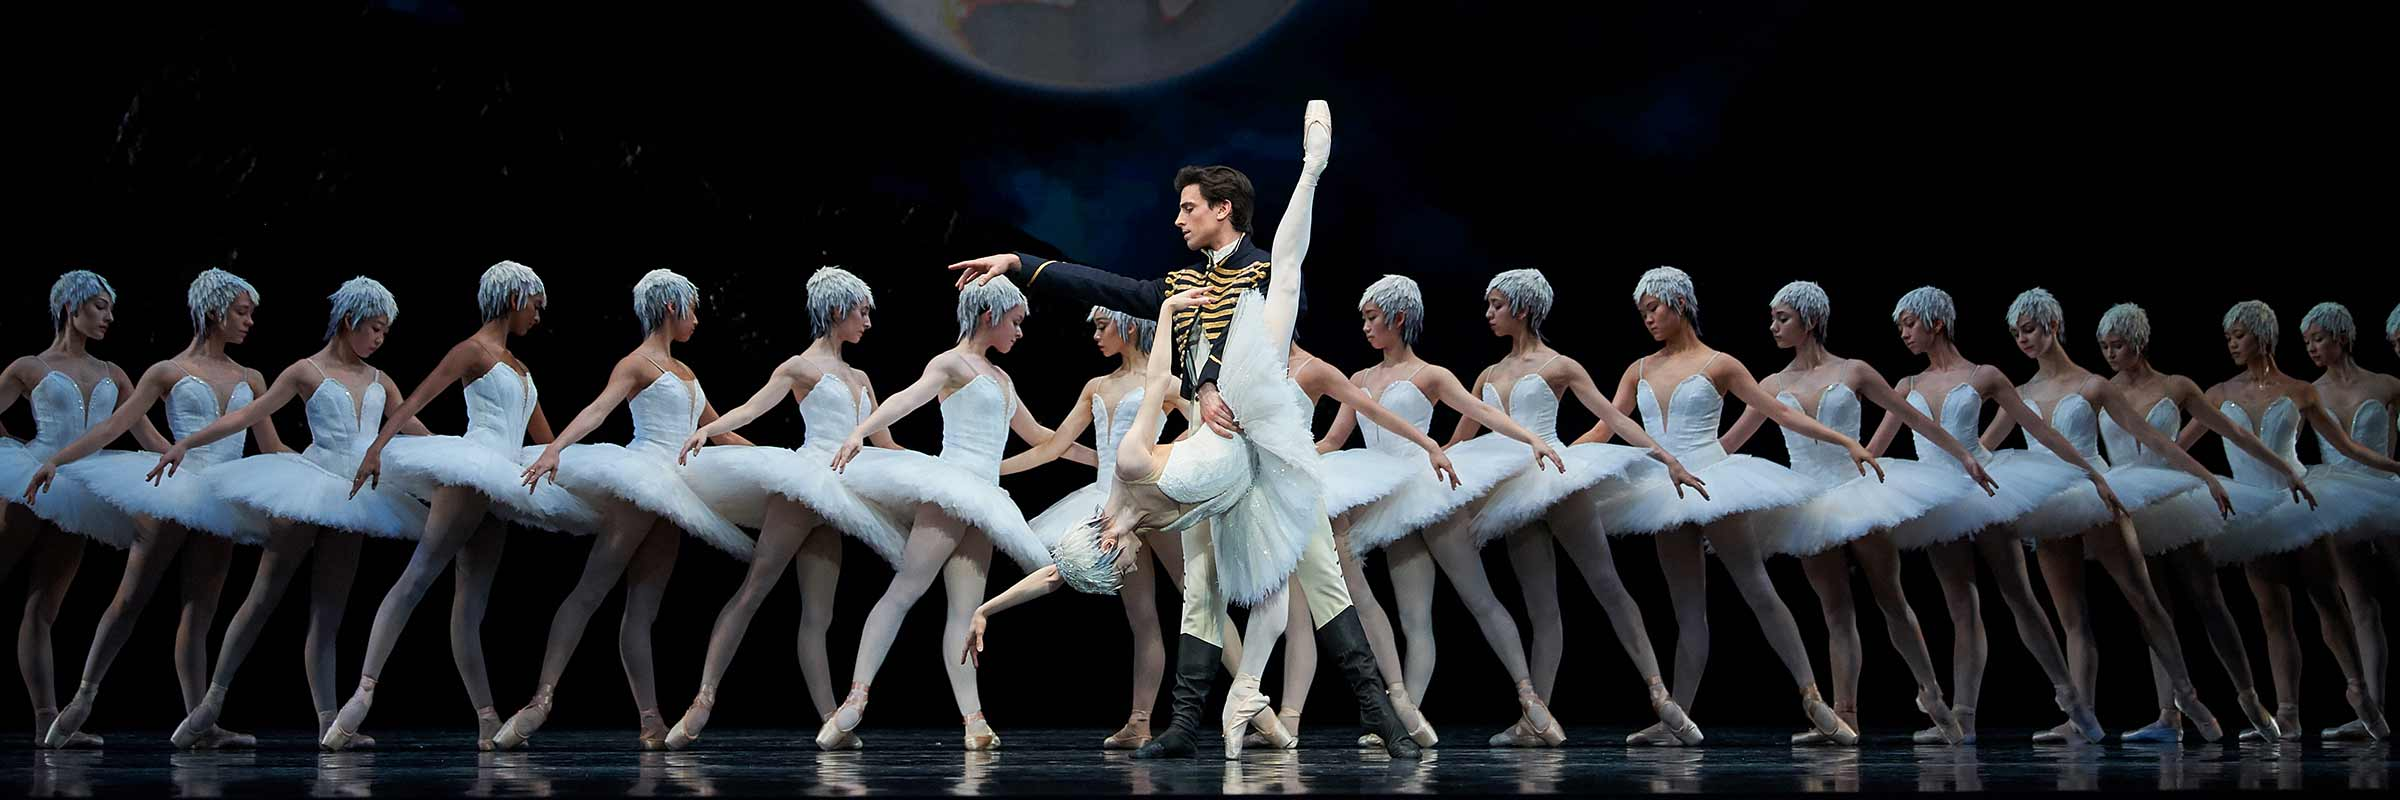 Before line of swans facing center, Siegfried faces right, holding Odette's waist as she bends over on right leg, left leg up